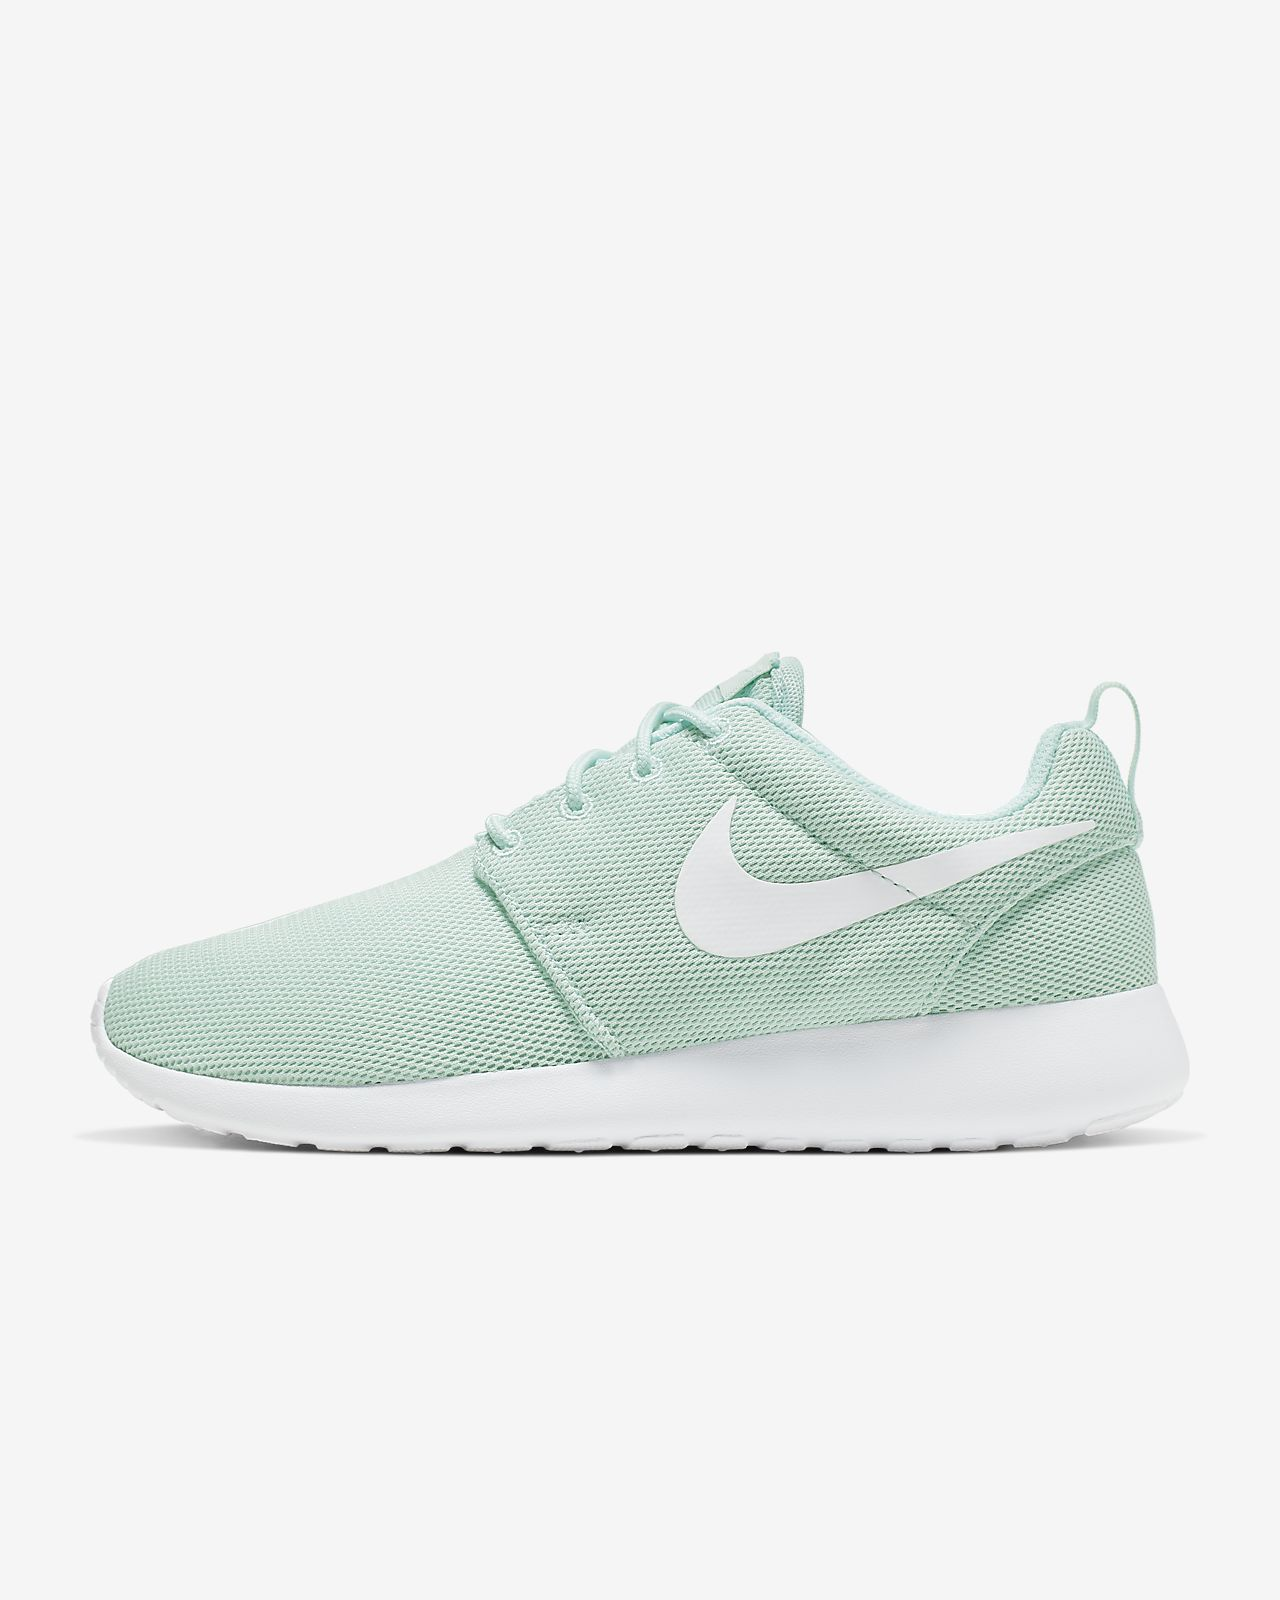 premium selection 003a5 c1fa0 ... Nike Roshe One Women s Shoe